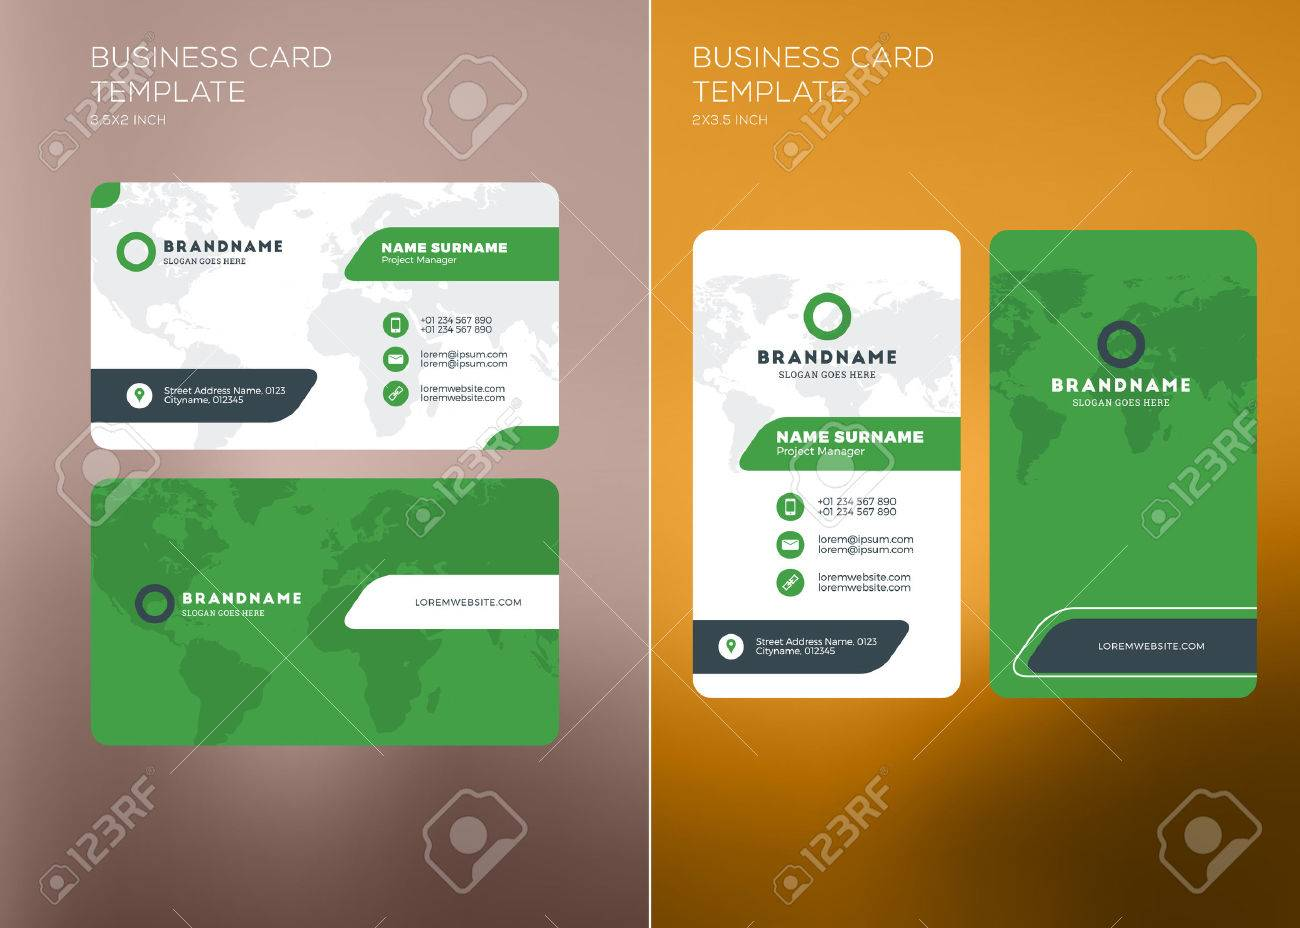 Corporate business card print template personal visiting card corporate business card print template personal visiting card with company logo vertical and horizontal cheaphphosting